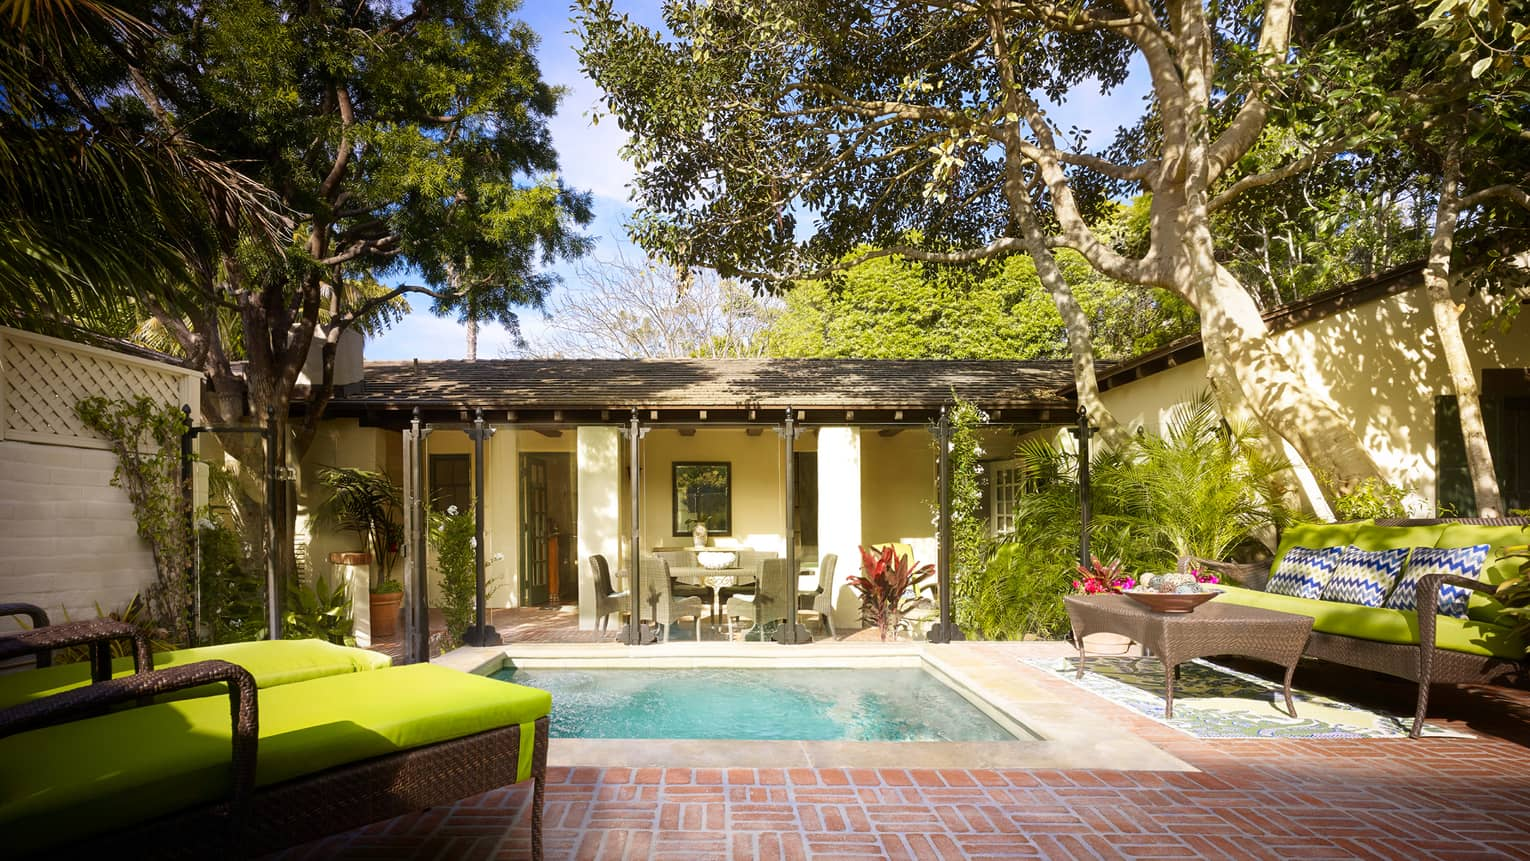 Bungalow backyard with plunge swimming pool, patio, wicker lounge chairs with green cushions